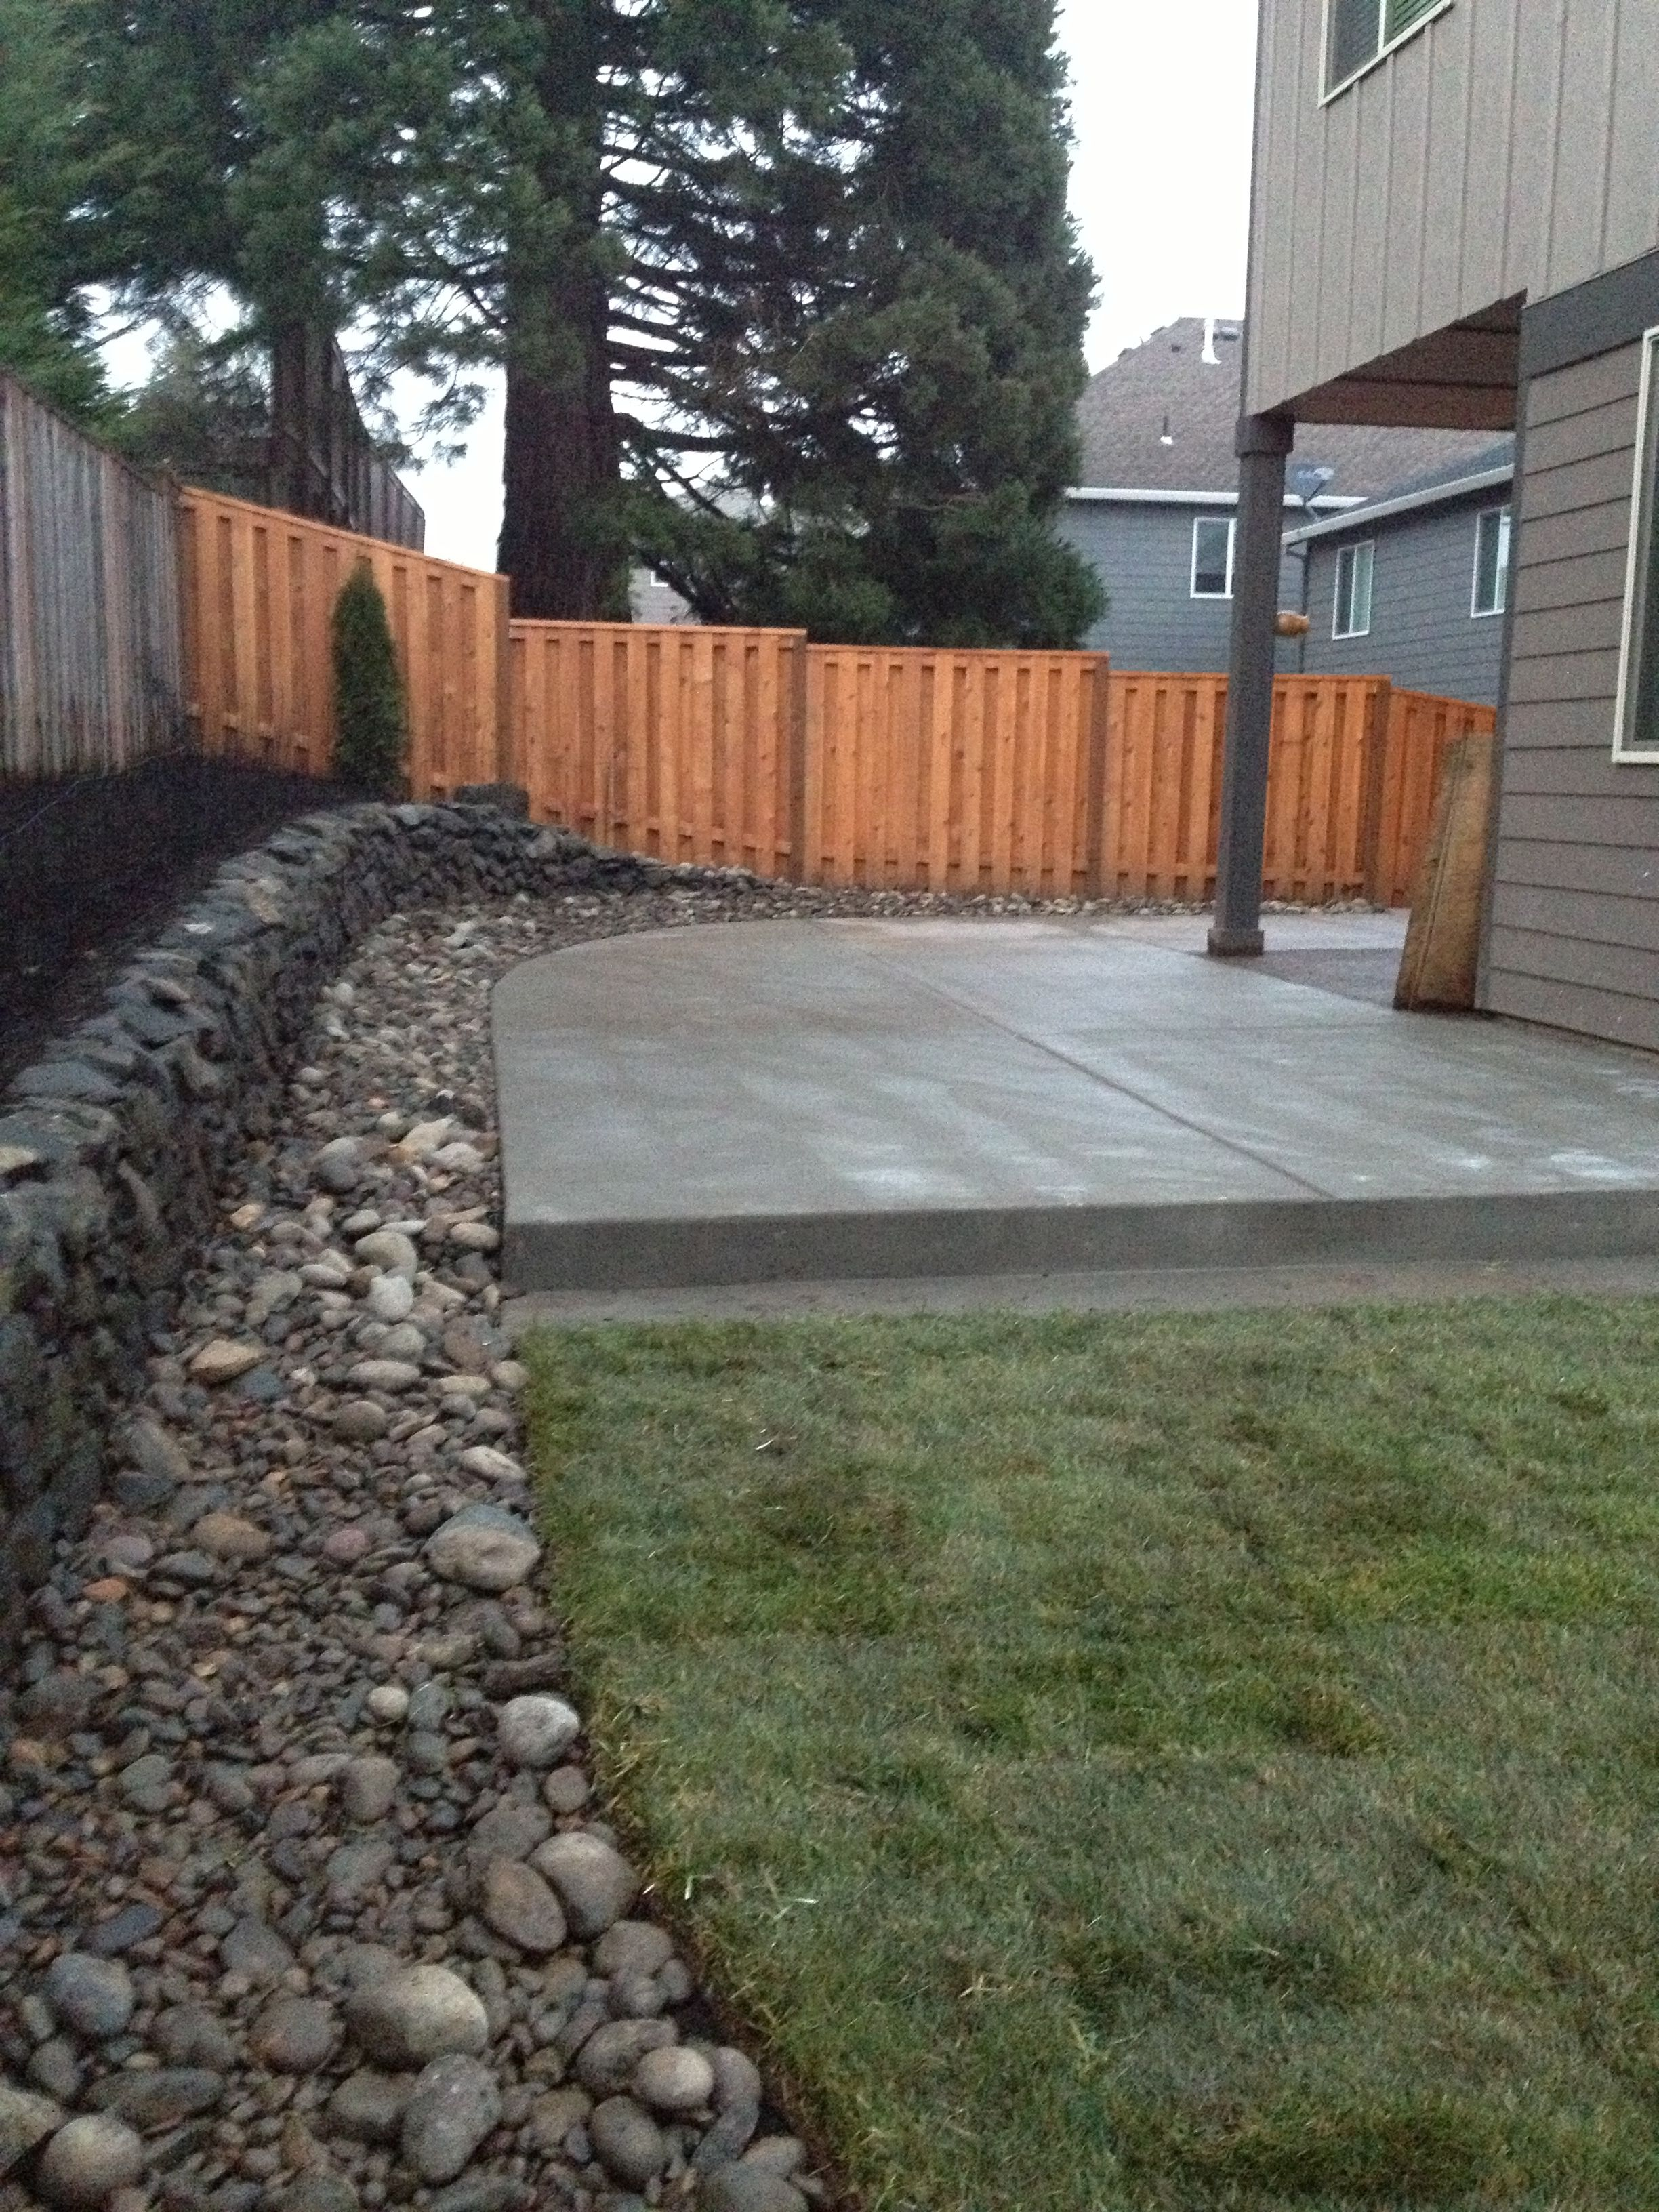 Marvelous Concrete Patio, River Rock Border With Drainage And Lawn